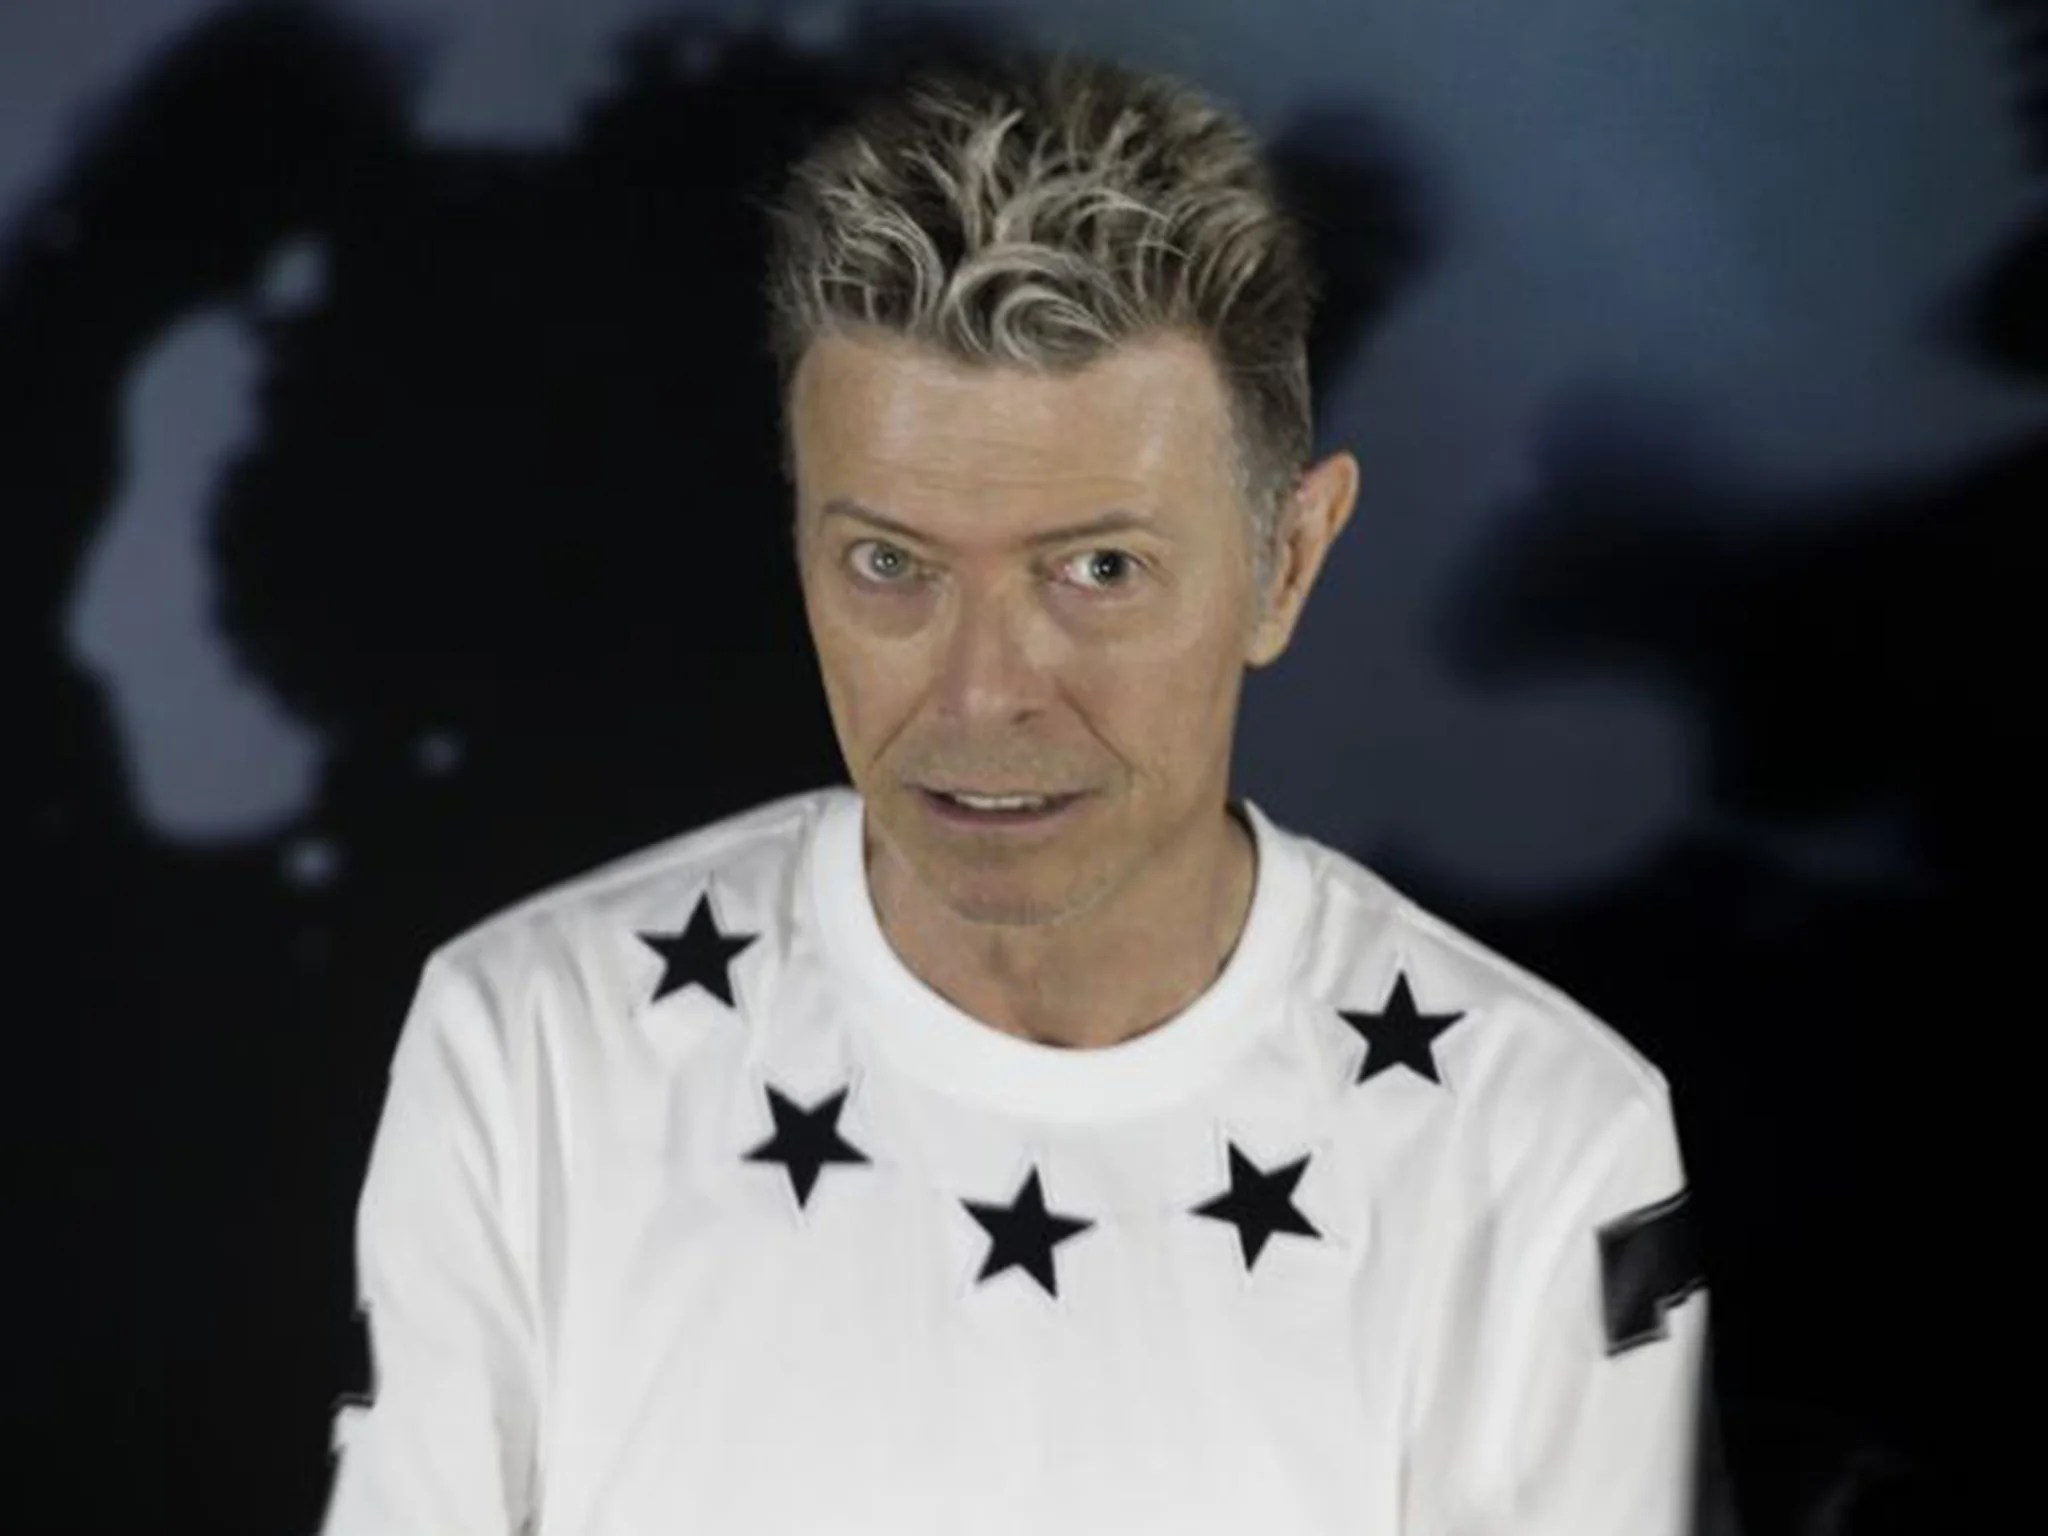 david bowie requested his